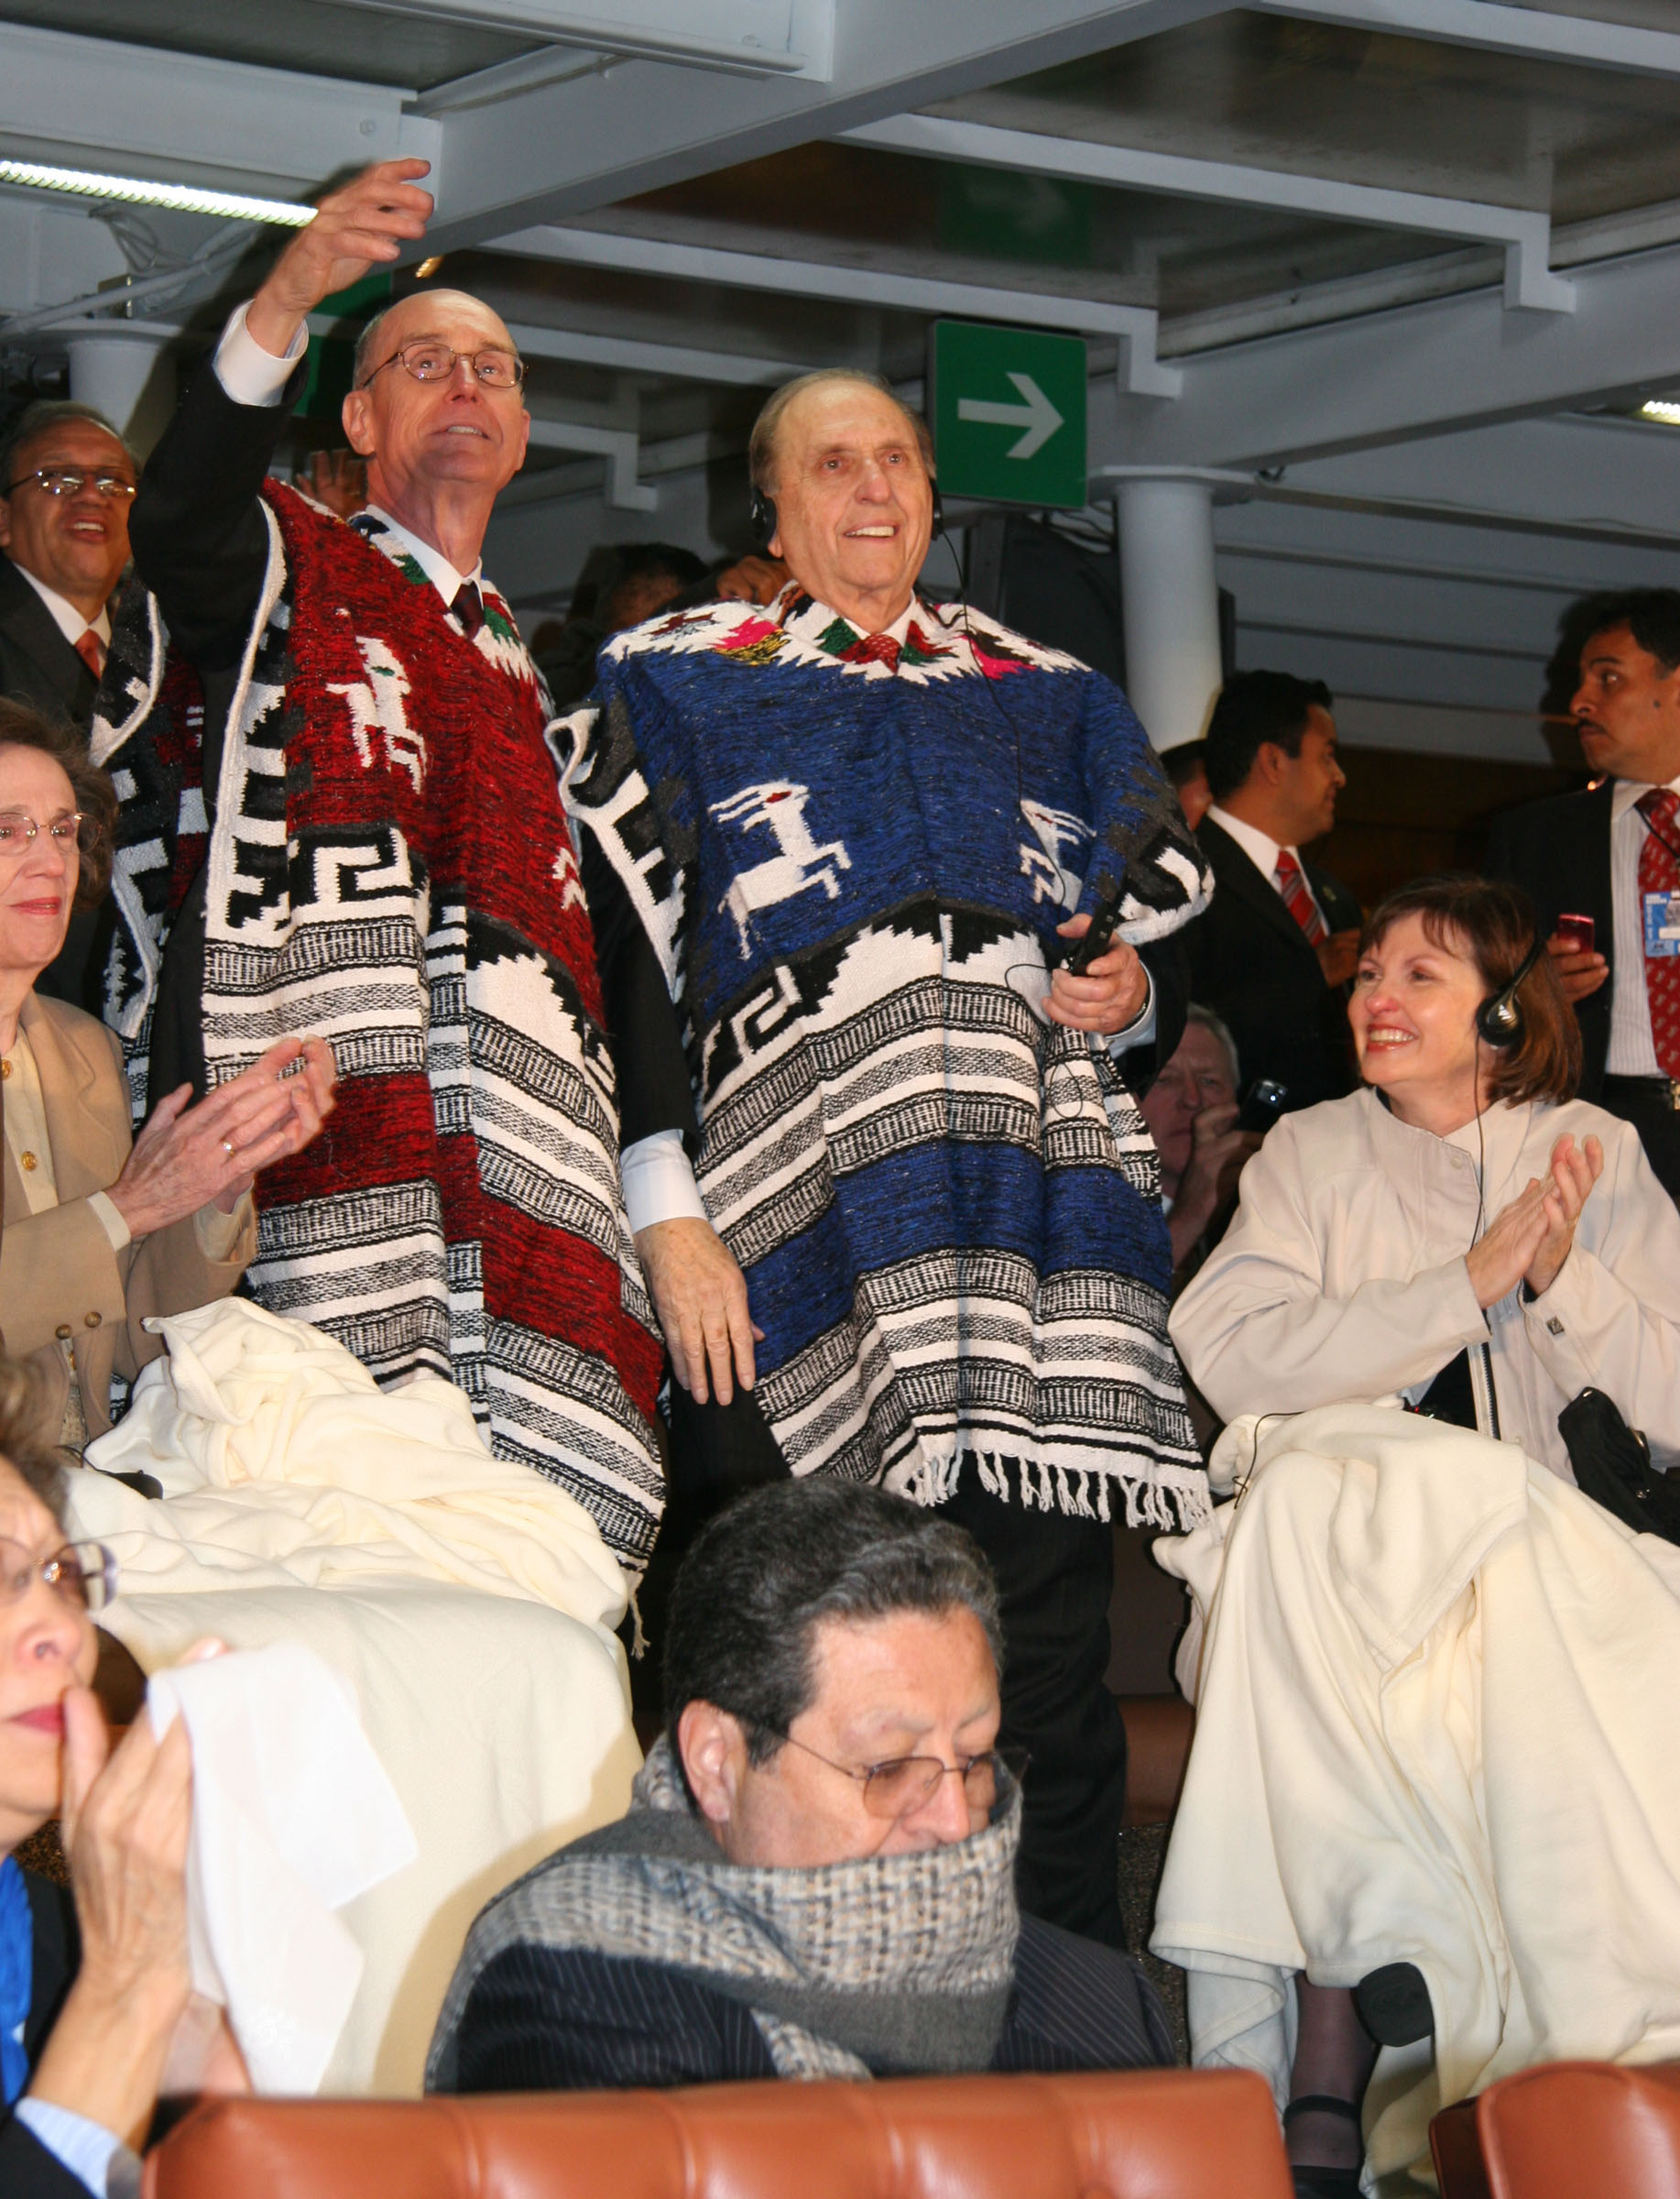 The image shows President Thomas S. Monson and President Henry B. Eyring saluting the 87,000 people inside Mexico City's Aztec stadium during the LDS Mexican cultural event. Monson and Eyring are wearing Mexican serapes to stay warm. Jason N. Swensen/Deseret News